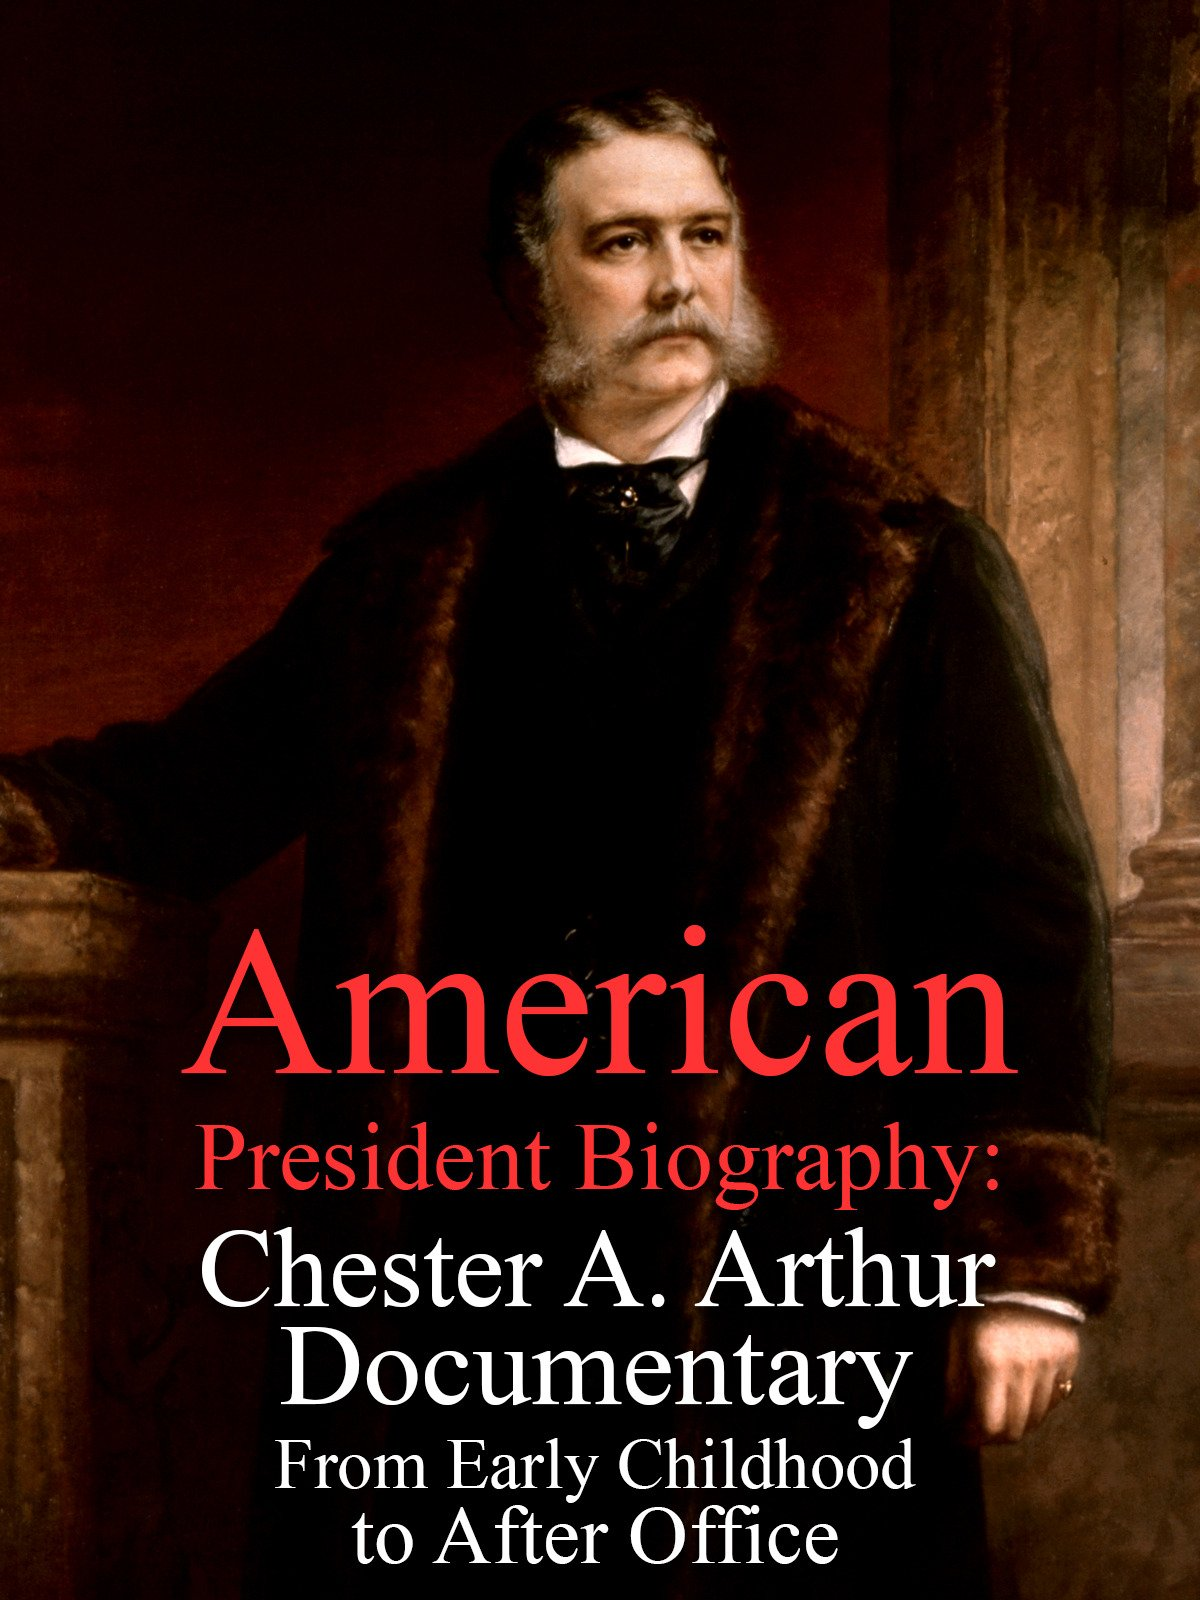 American President Biography: Chester A. Arthur Documentary from Early Childhood to After Office